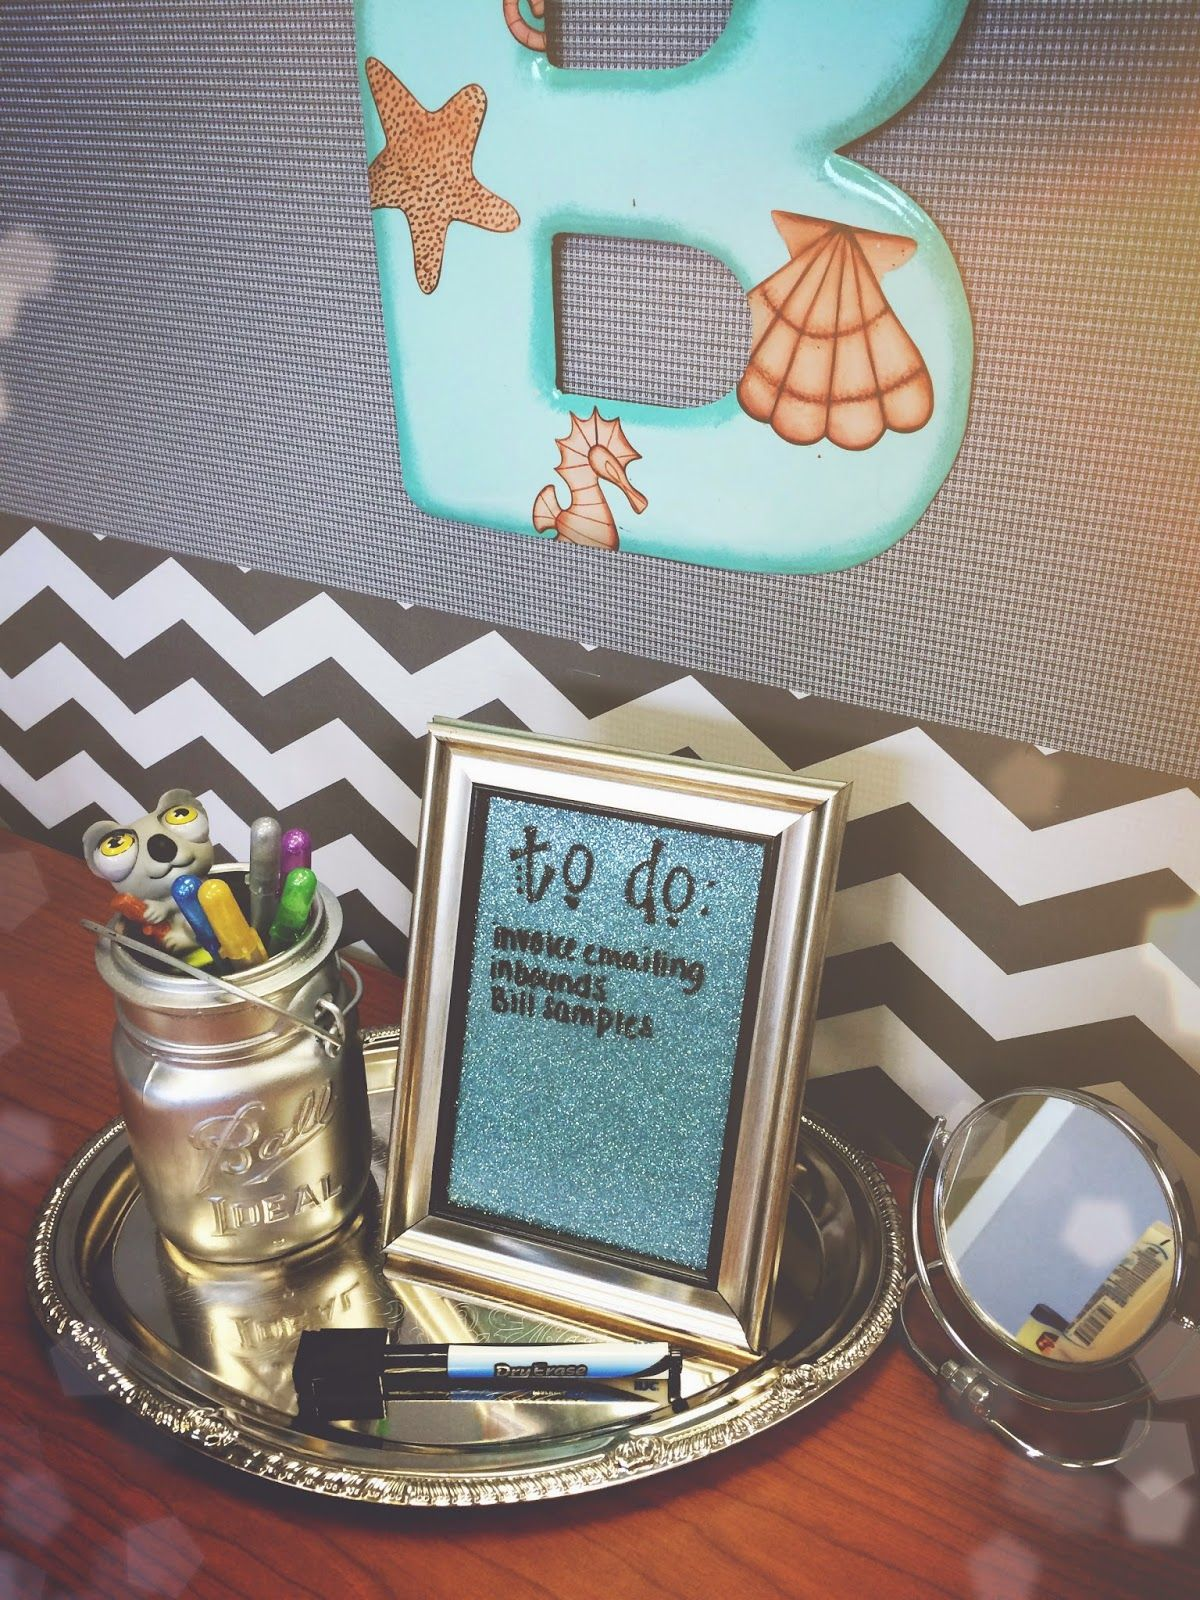 decorate office cubicle. Cubicle Decorating DIY $2 Desktop Dry Erase Board For Office Work Space Desk Decor Decorate